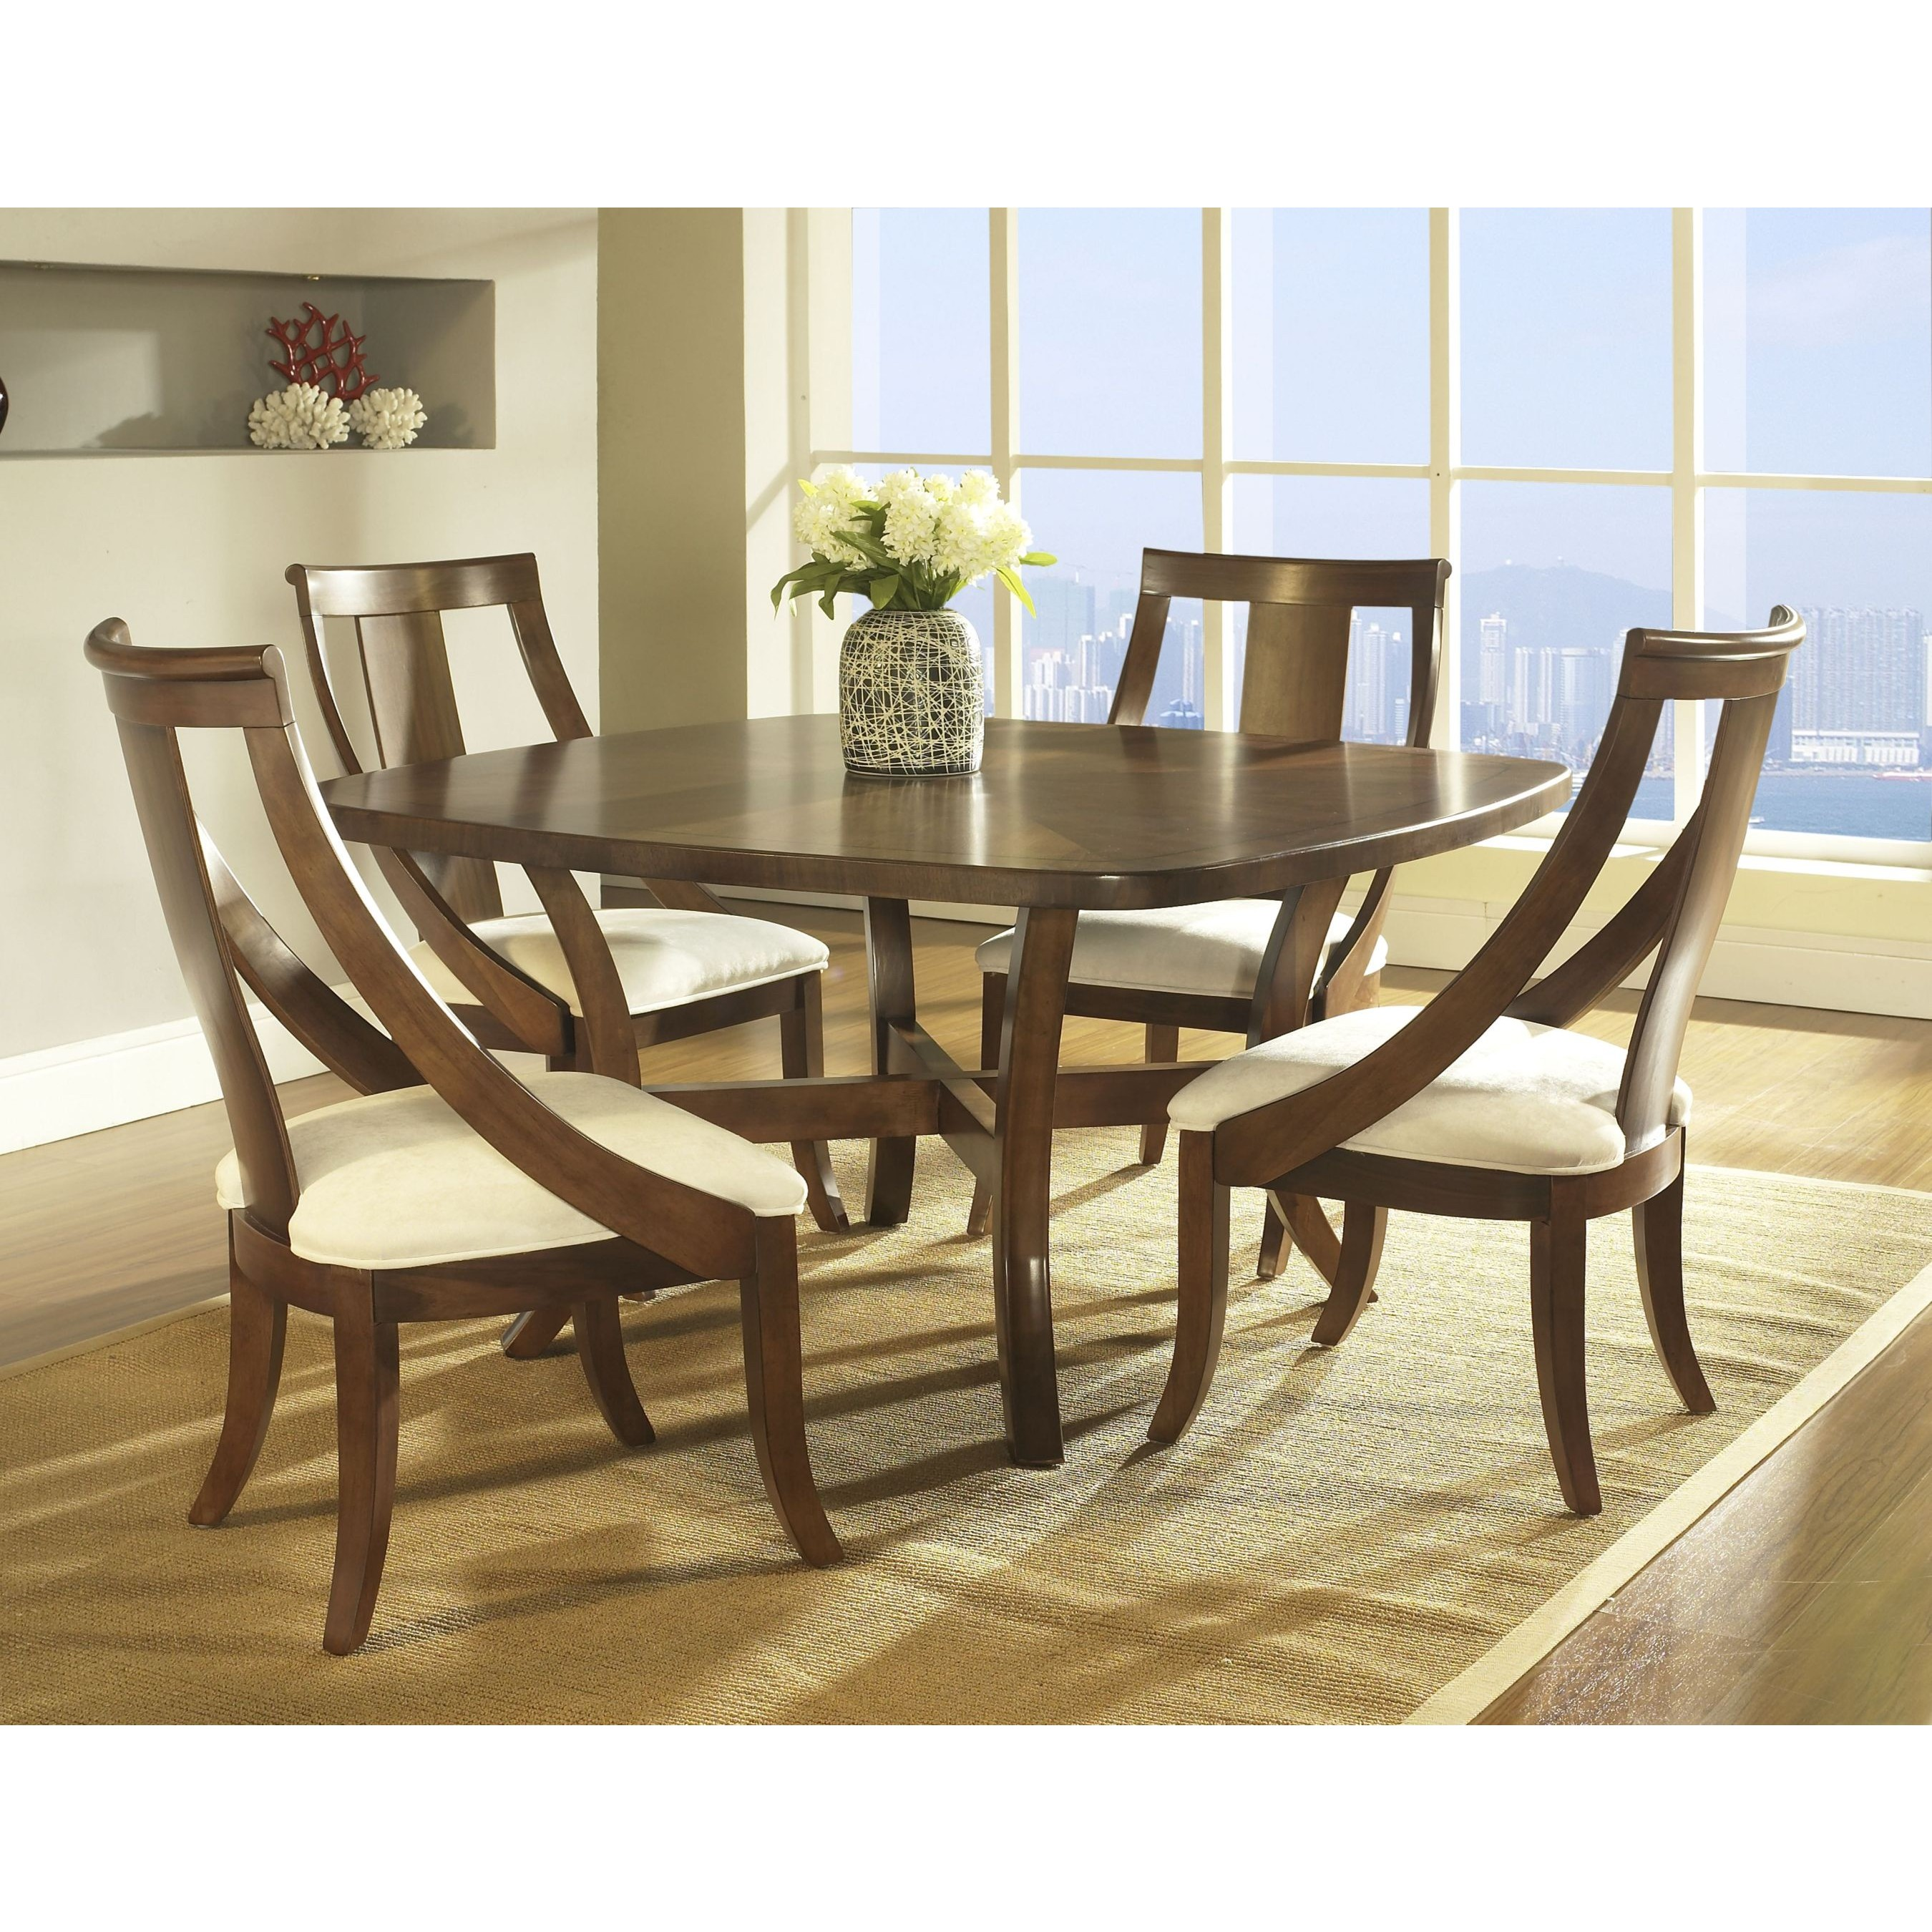 Dining Room Tables And Chairs For 4: Square Dining Table For 4